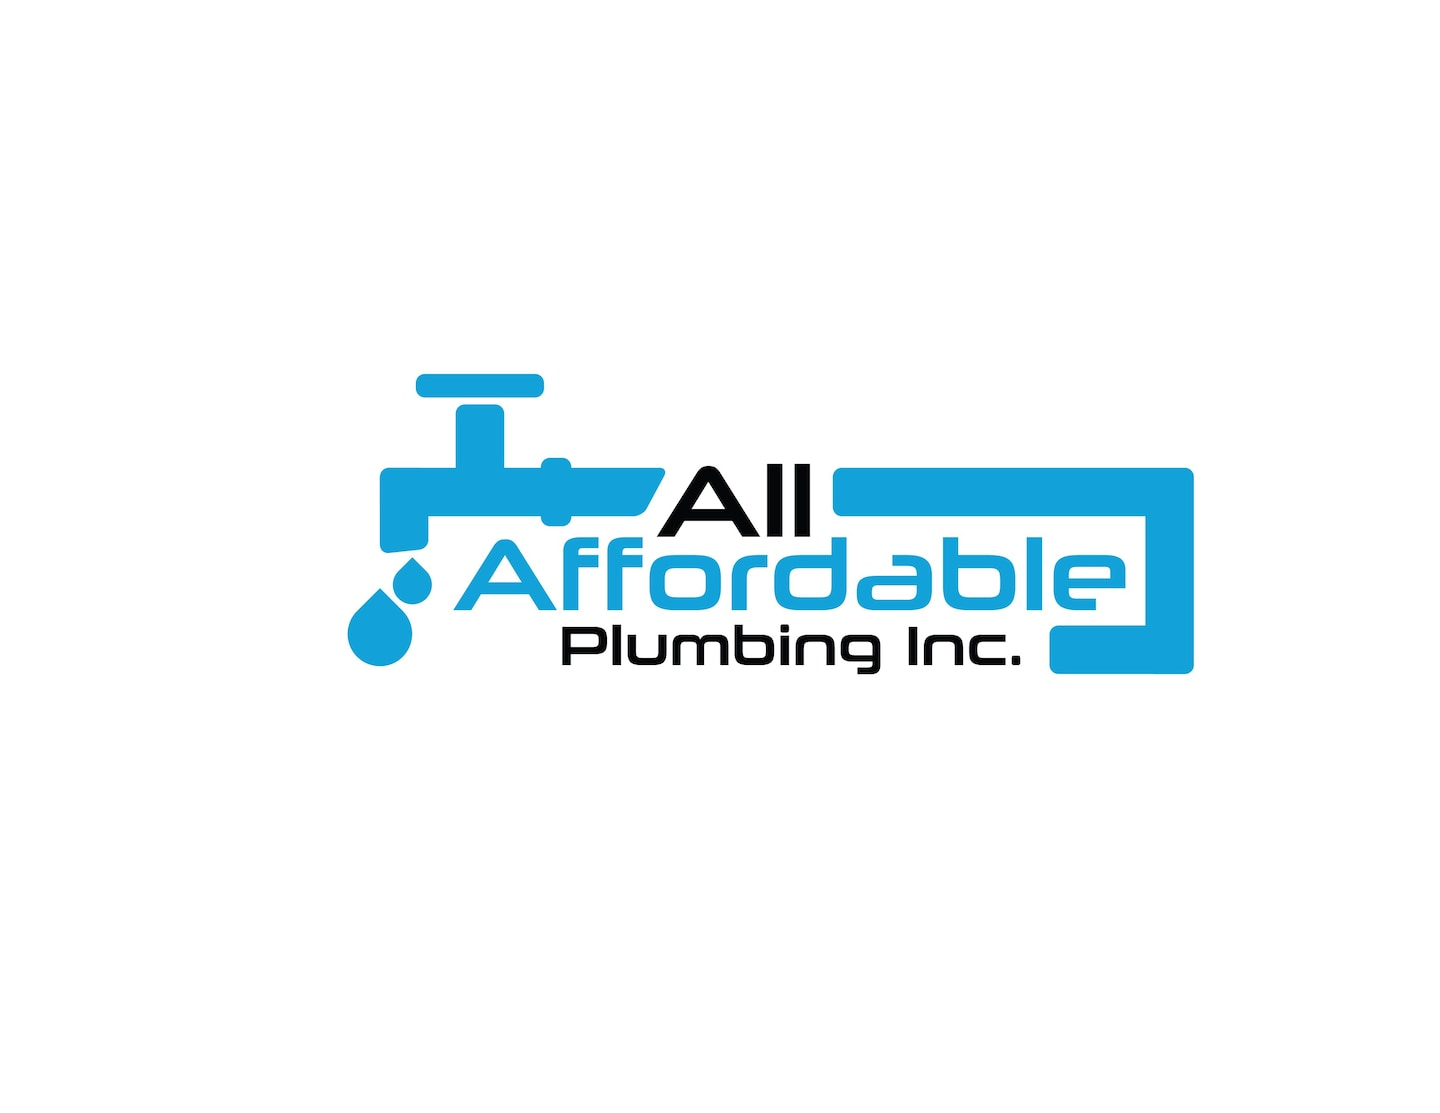 All Affordable Plumbing Inc